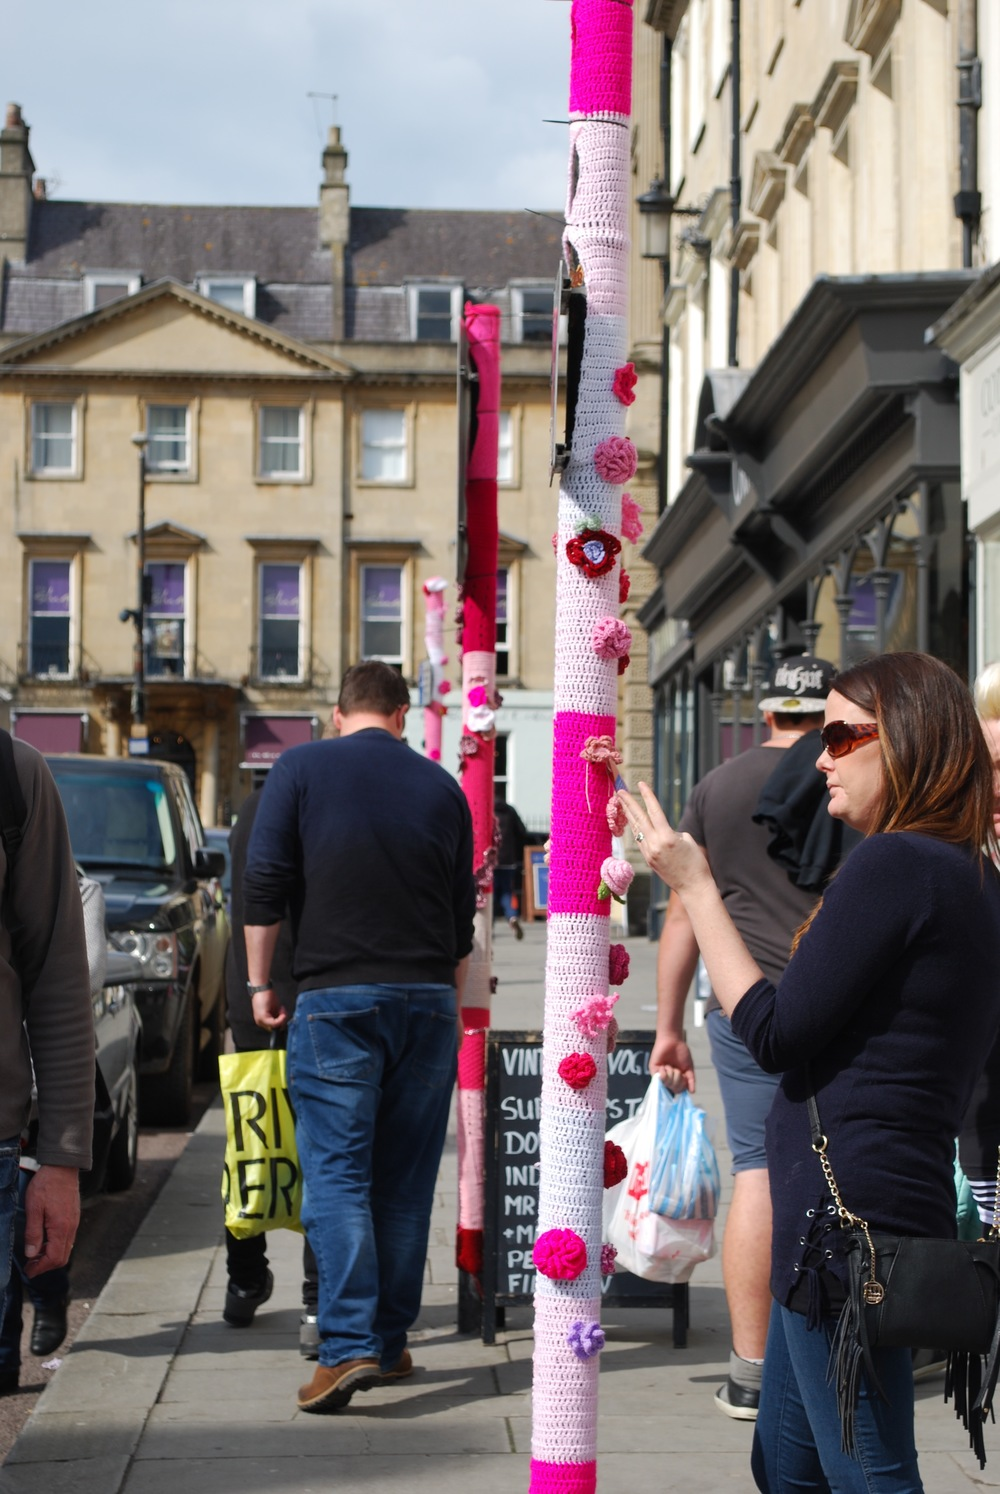 Bath In Fashion 2016 Yarn bomb lady interacting